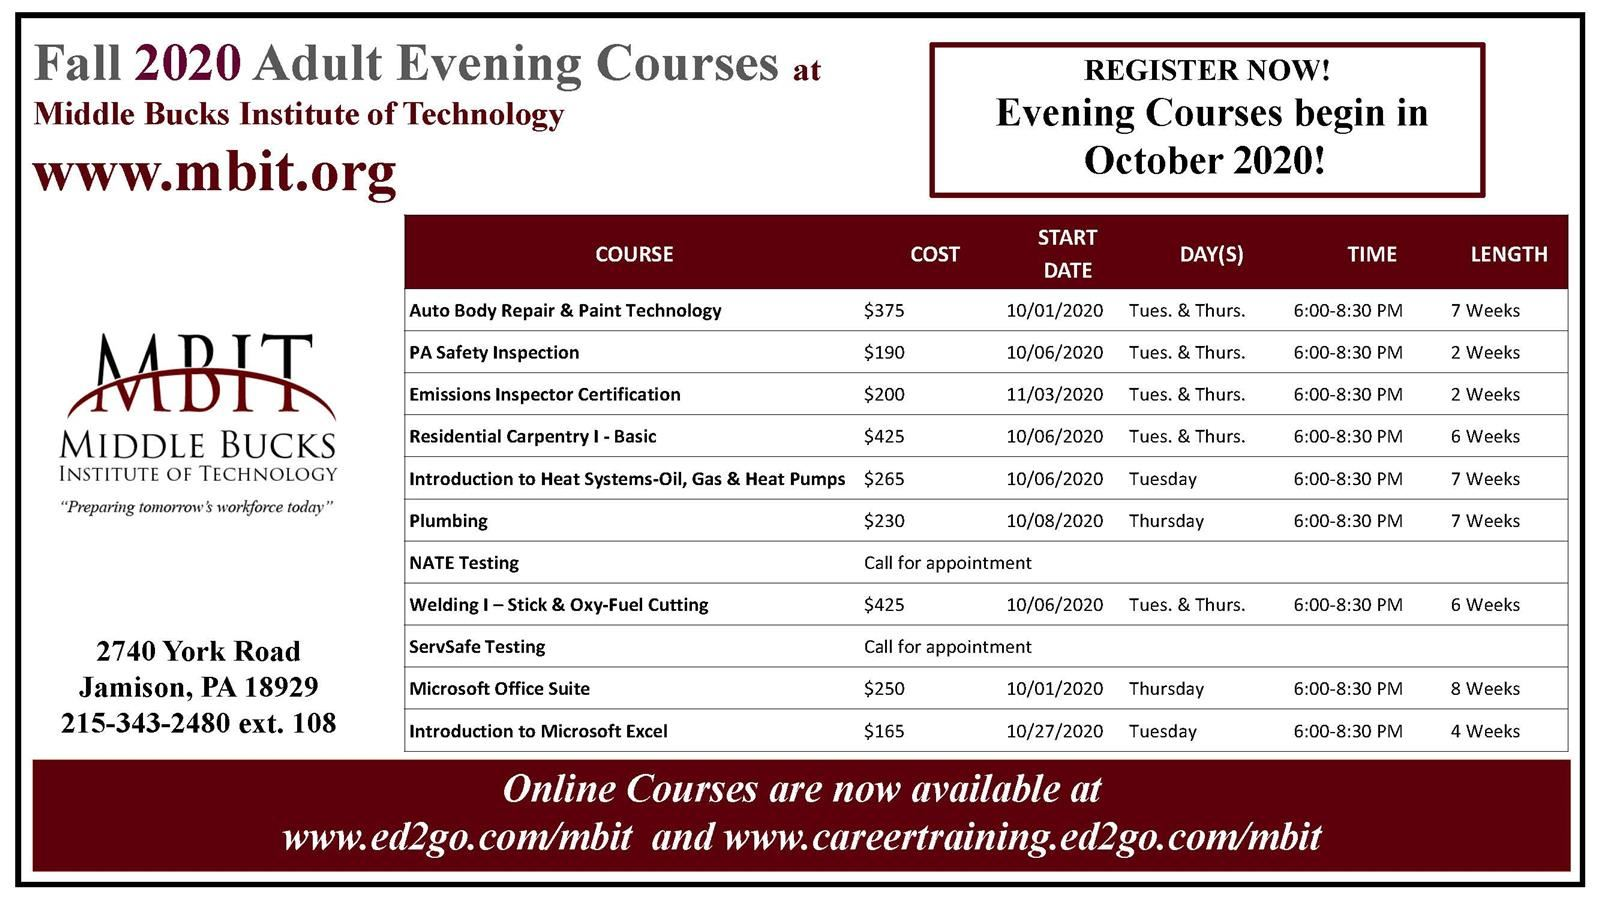 Fall 2020 Adult Evening Courses have been posted